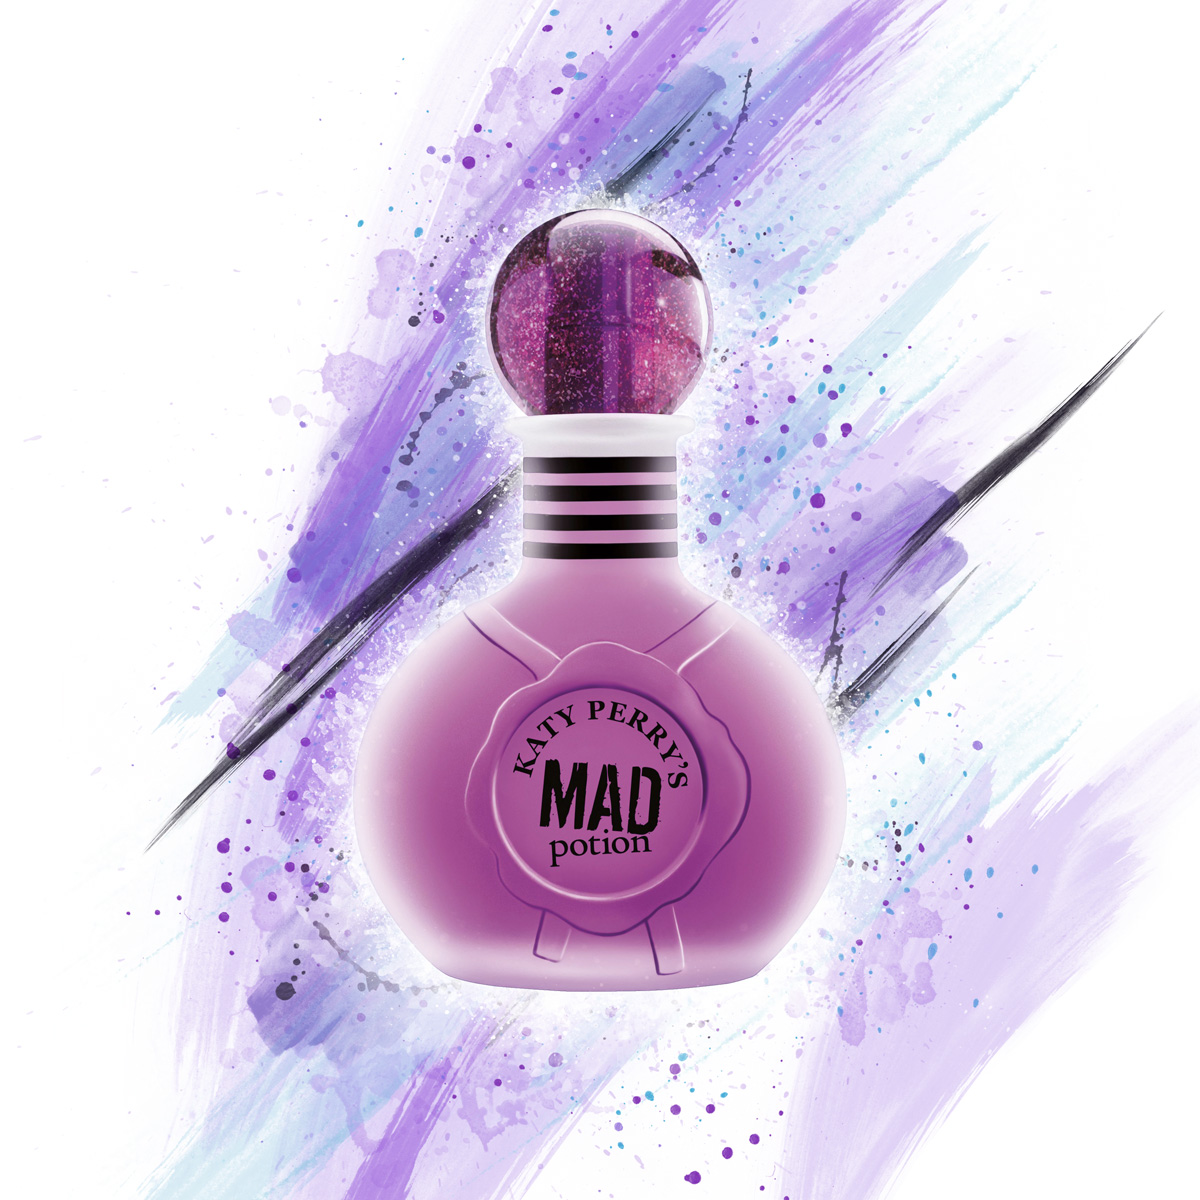 Katy Perry Mad Potion Free Sample